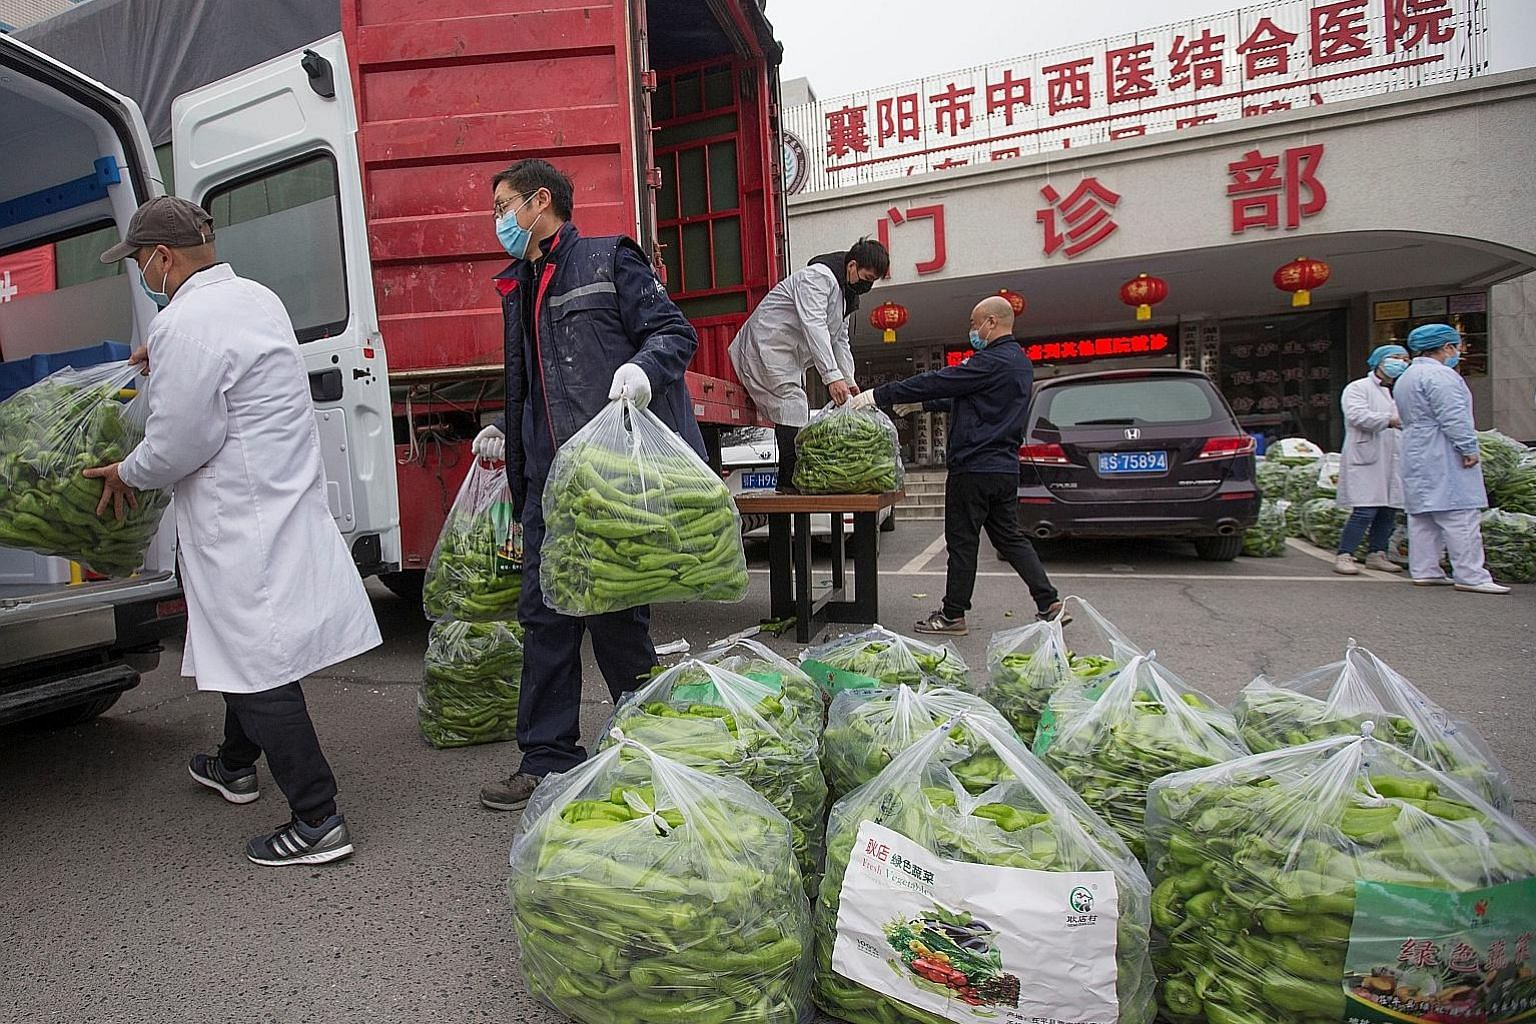 Medical workers receiving chillies donated from Shandong province at a hospital in the city of Xiangyang, in Hubei province, yesterday. Hubei has rolled out a slew of stricter measures this week, including lockdowns in communities and a ban on all mo